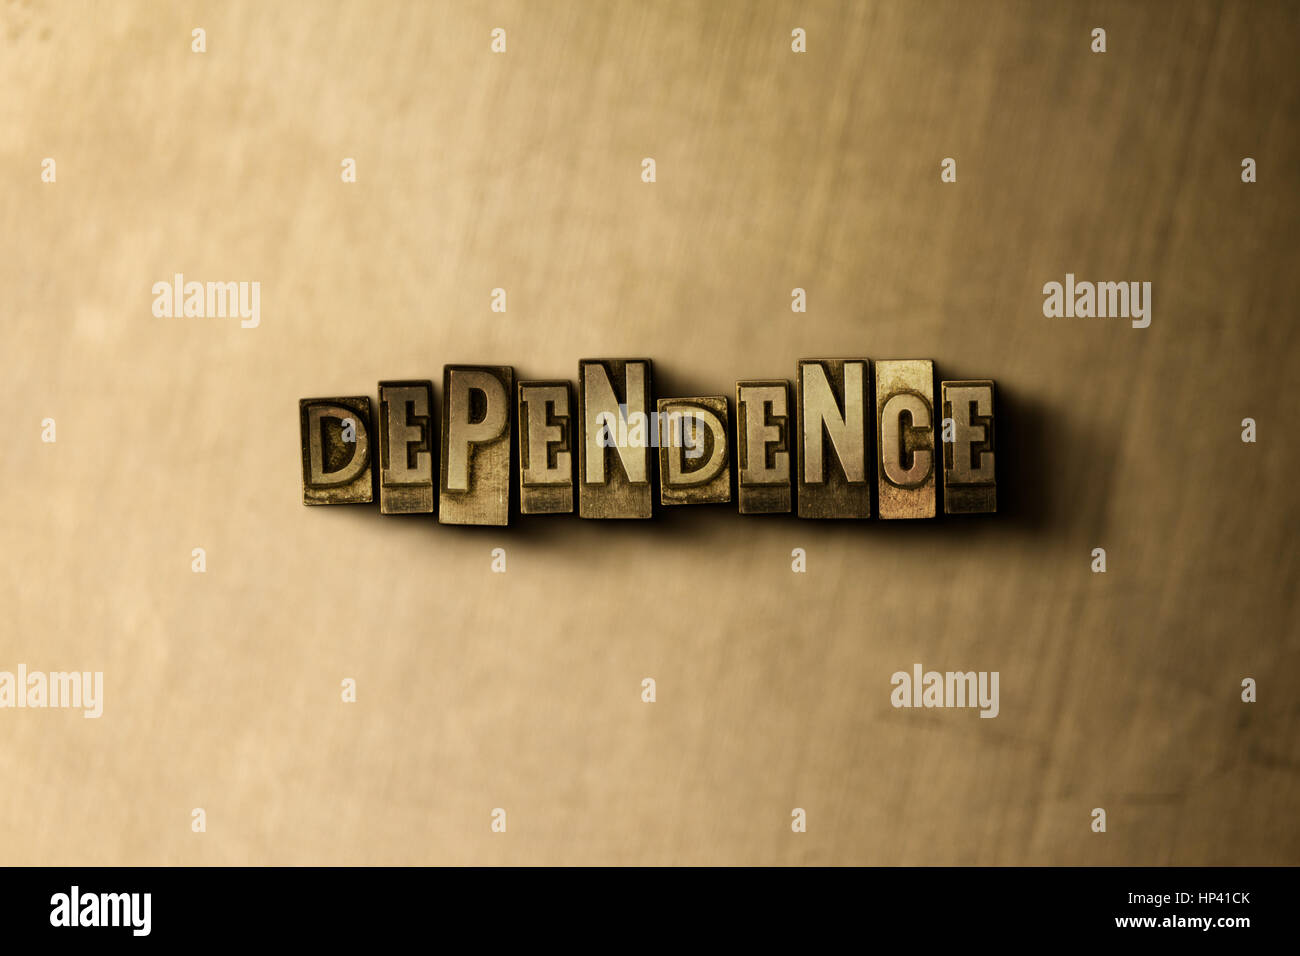 DEPENDENCE - close-up of grungy vintage typeset word on metal backdrop. Royalty free stock illustration.  Can be - Stock Image